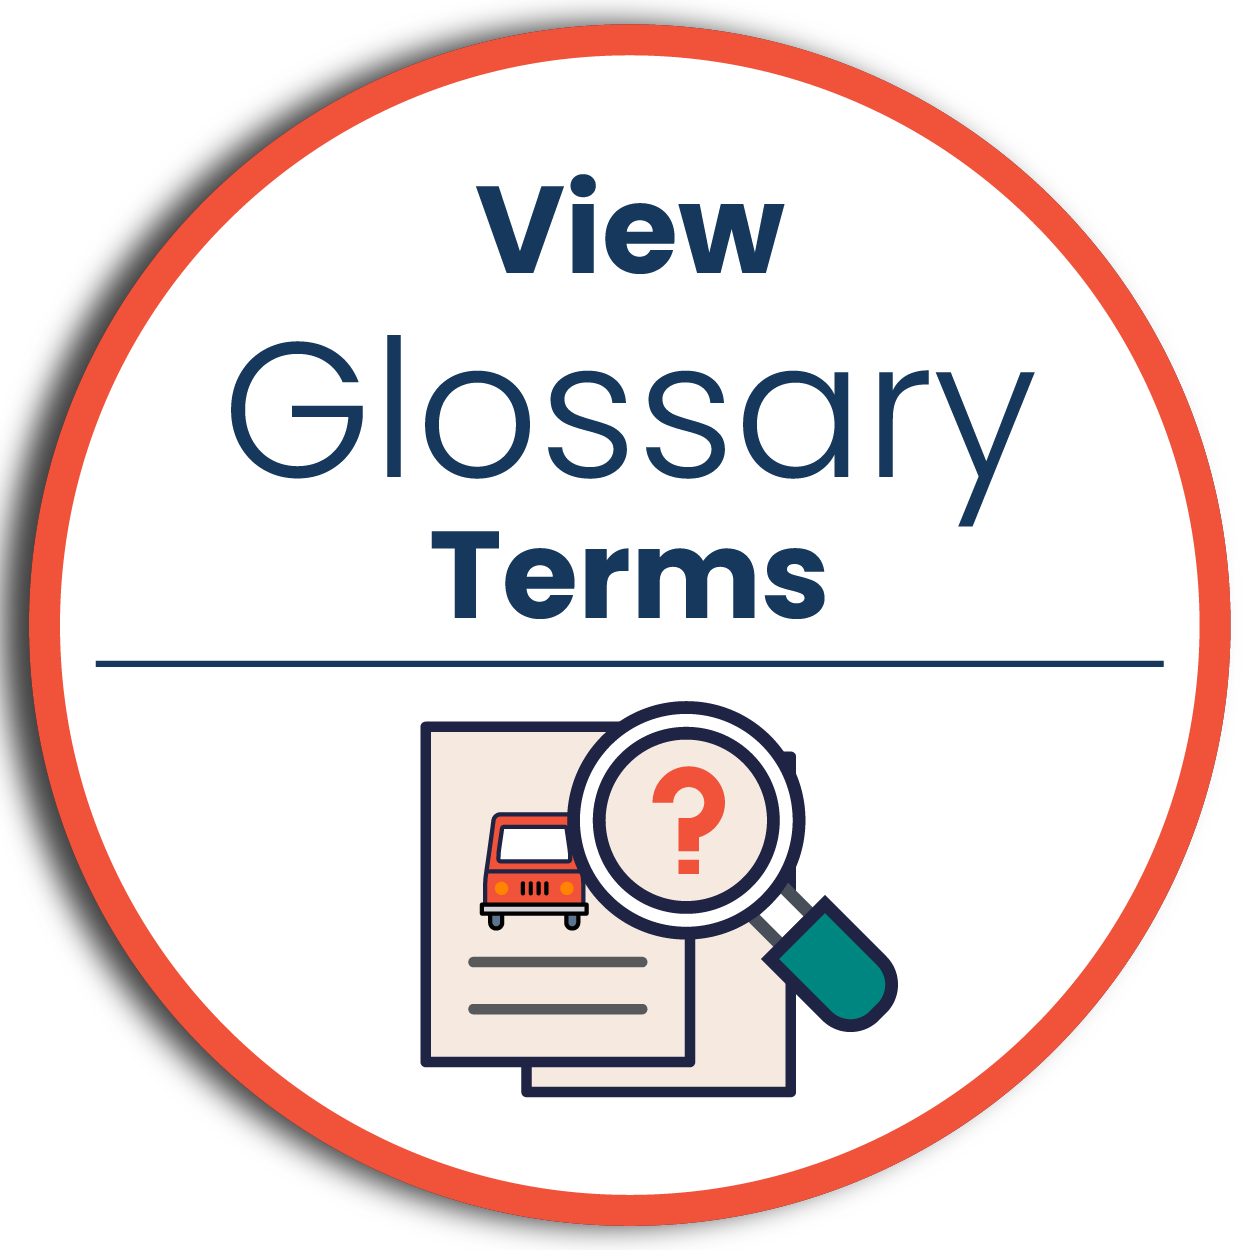 Glossary terms icon - click to view project study terms